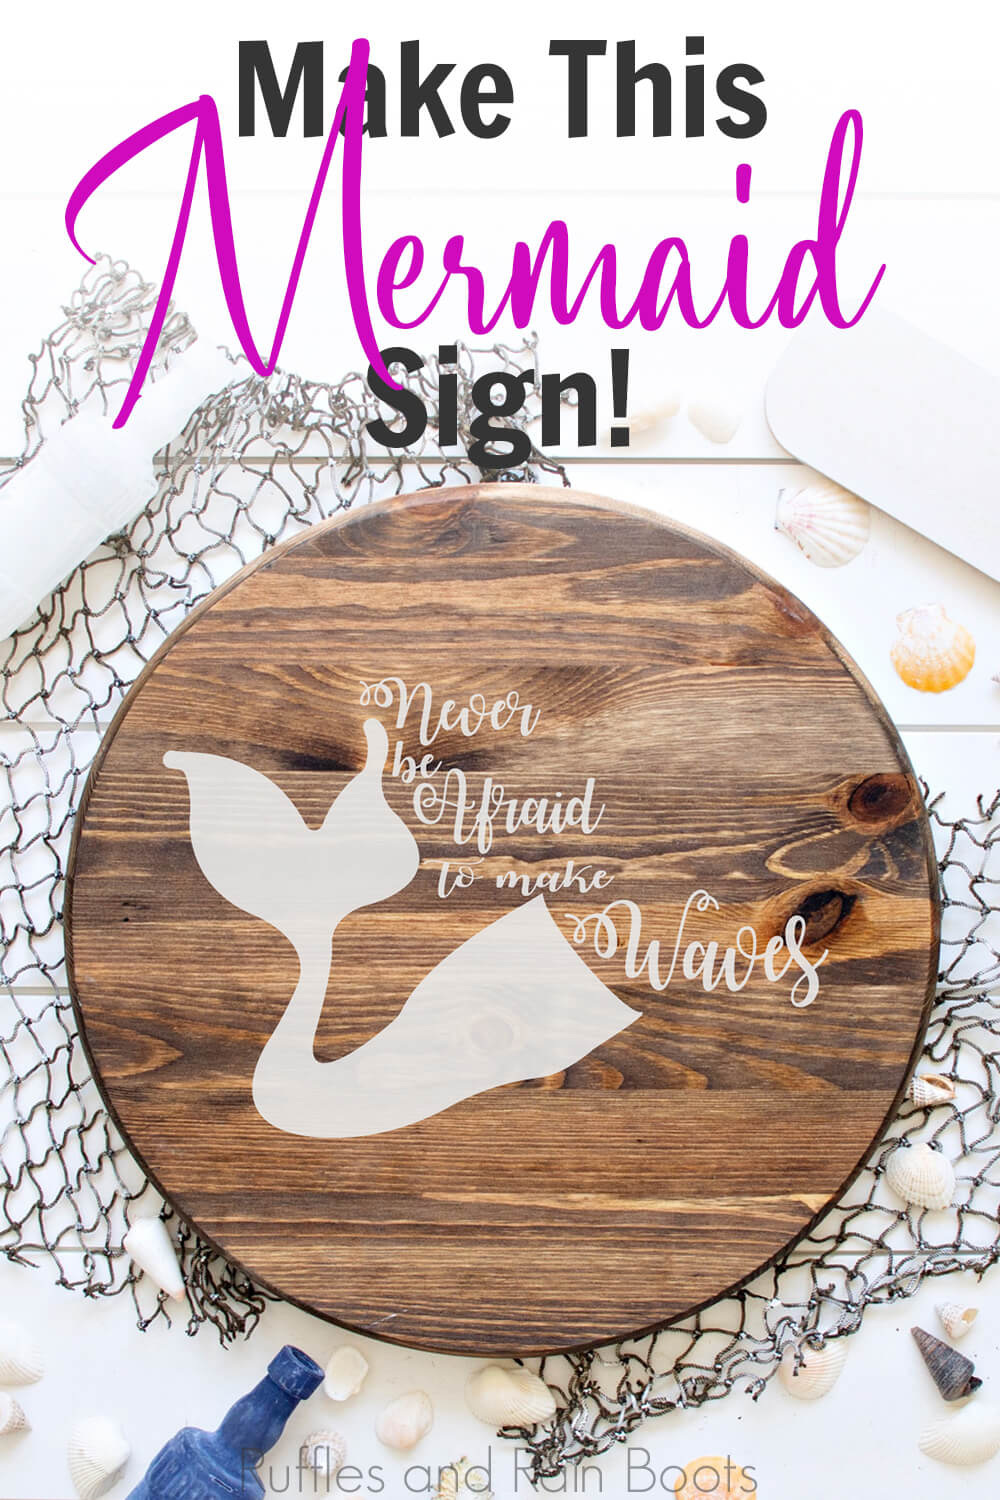 never be afraid to make waves free mermaid cut file on a round wood sign on a fishing net on a white wood background with sea shells, a blue bottle and oars scattered around with text which reads make this mermaid sign